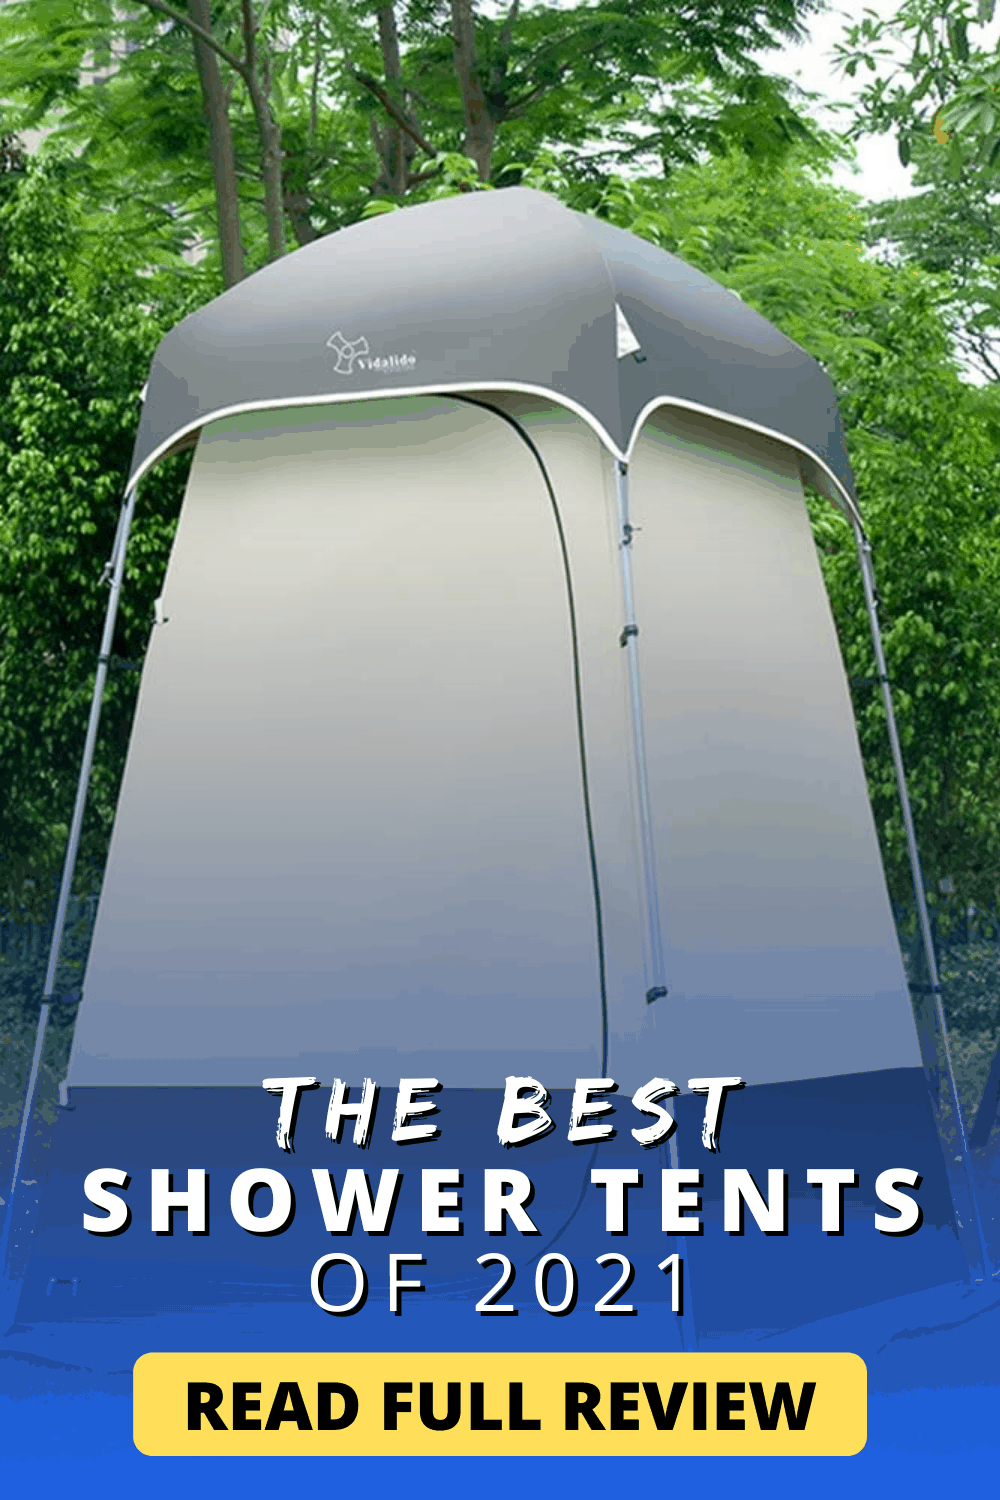 The Best Shower Tents of 2021 | Read Now!